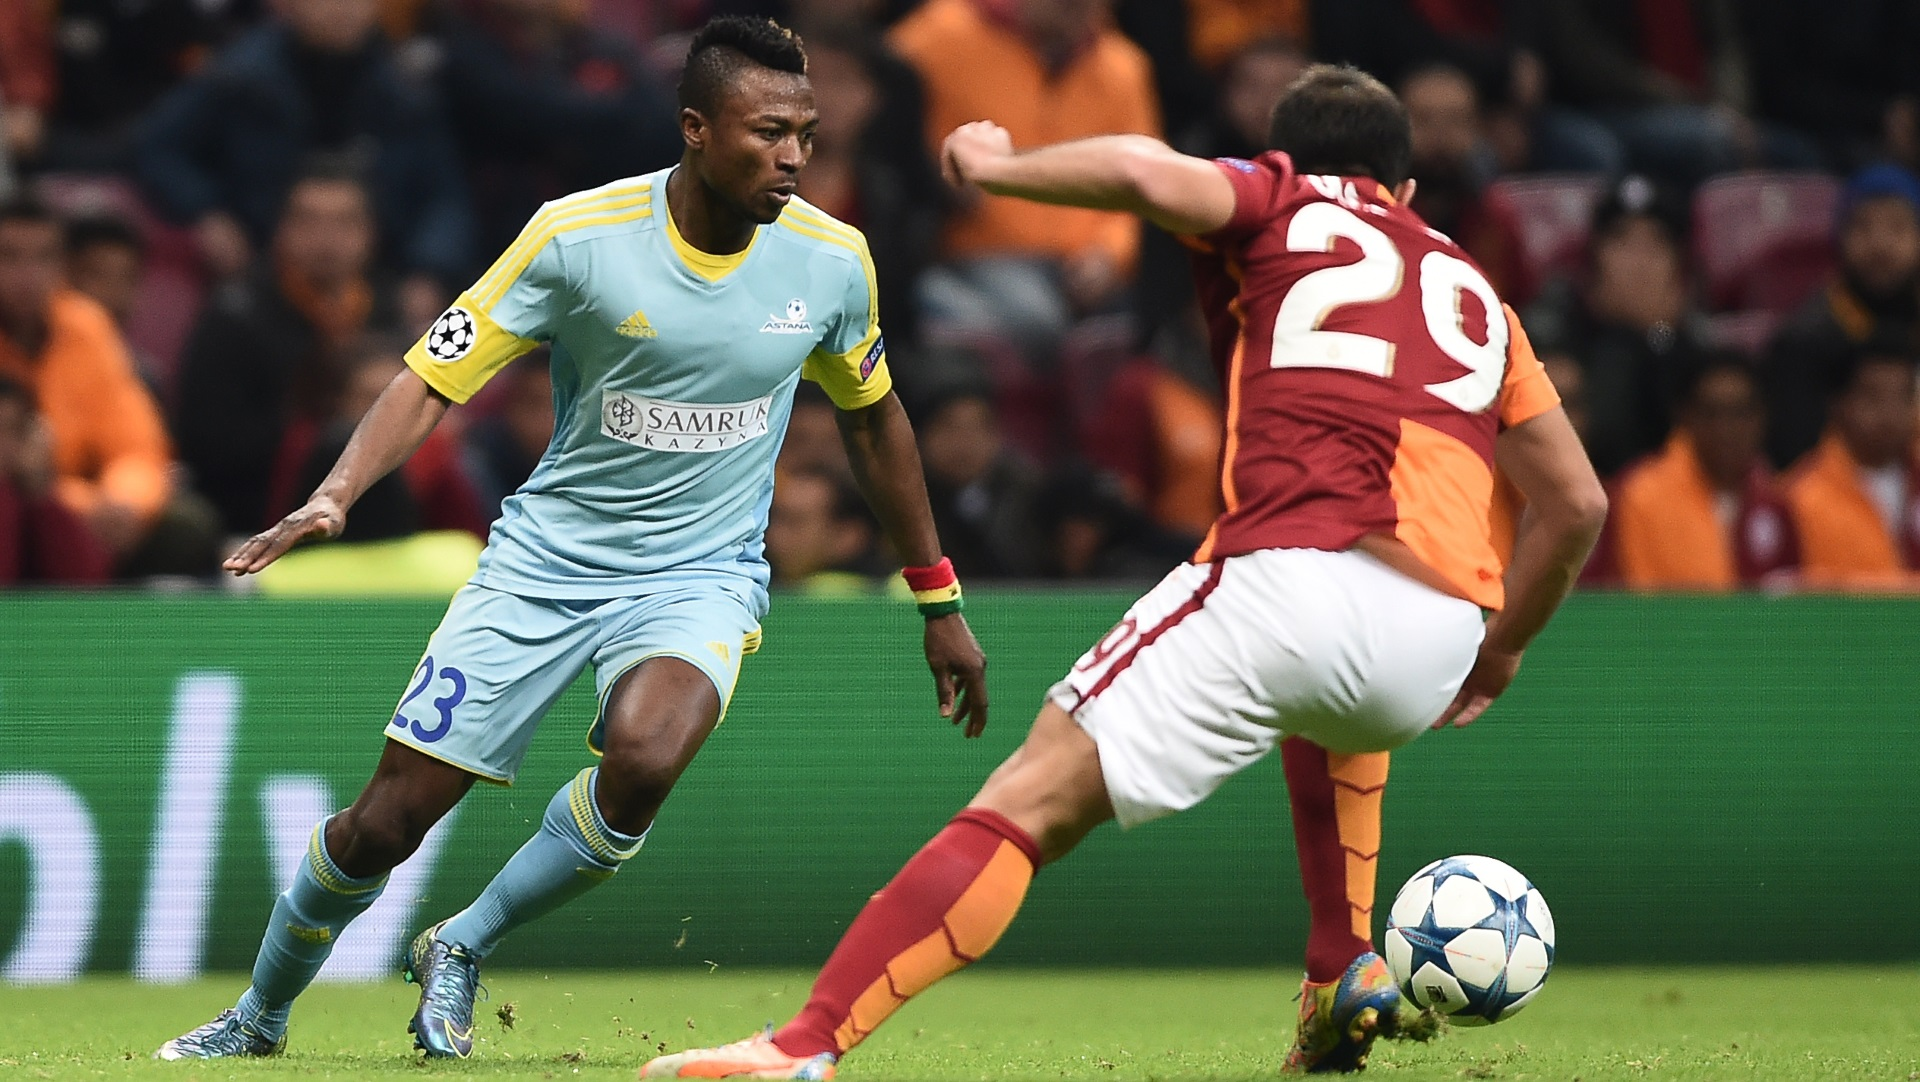 UEFA play-offs: Patrick Twumasi hits brace but Astana eliminated by prolific Celtic